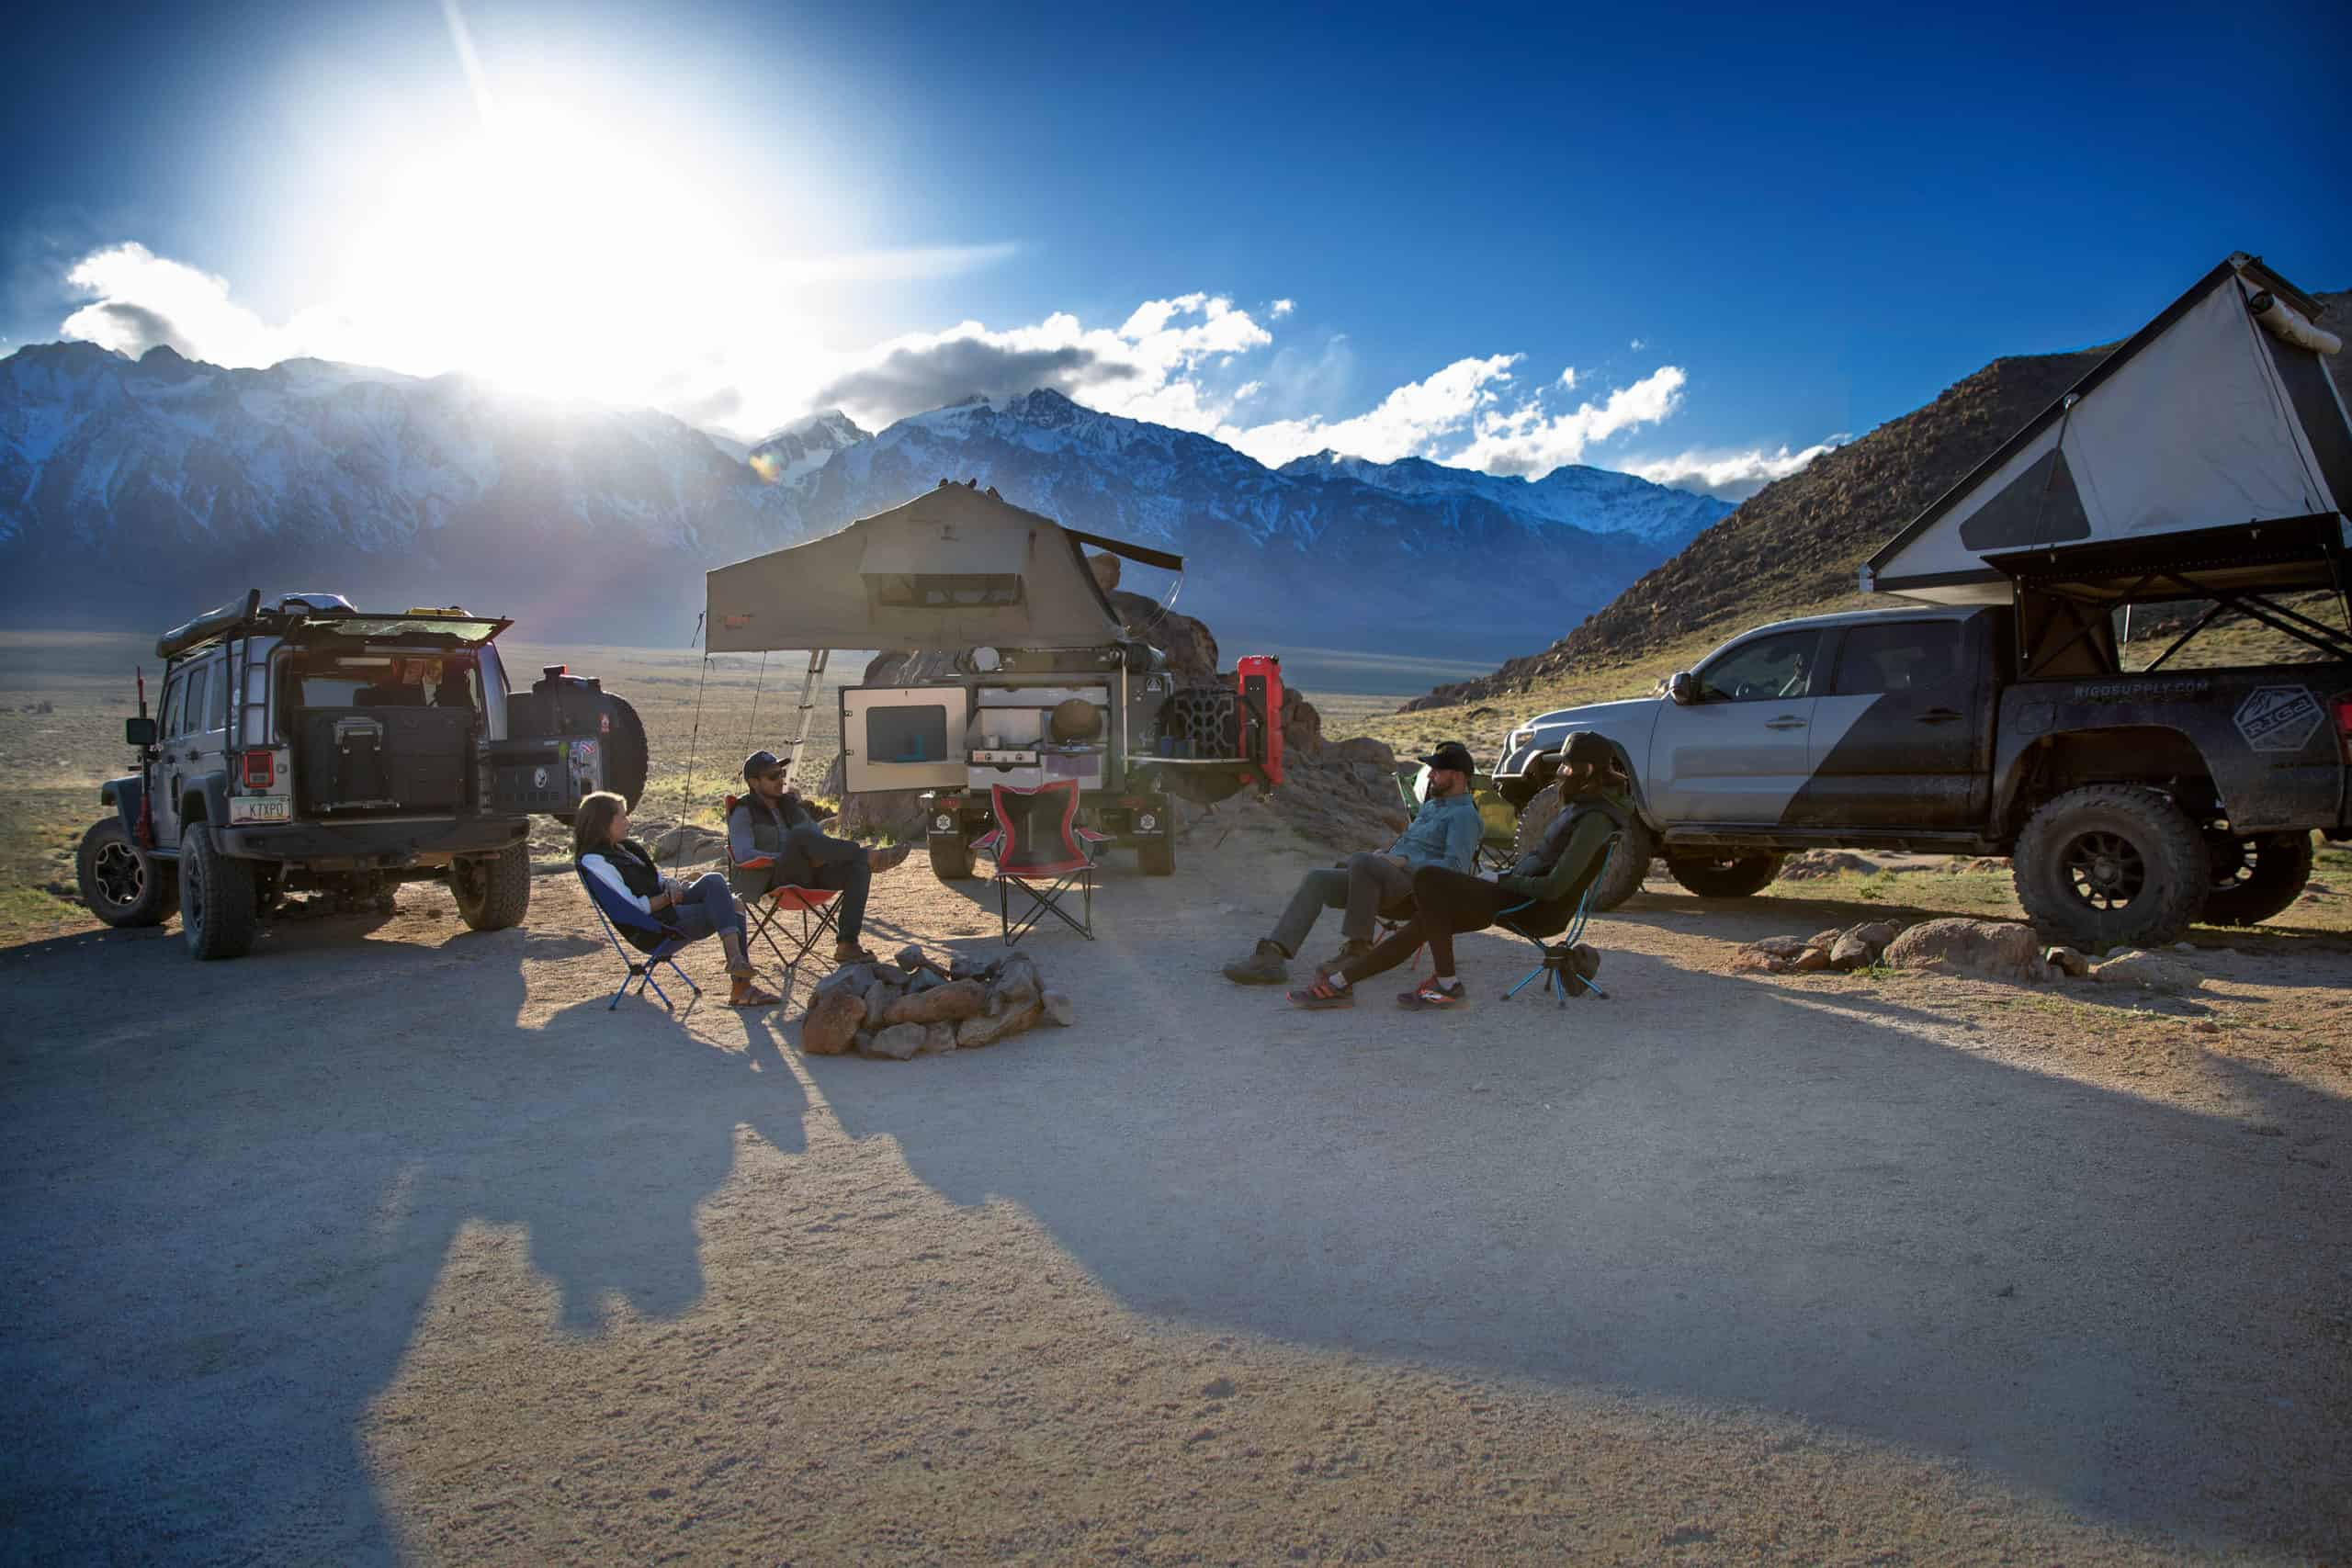 Finding the best campsite with Garmin GPS